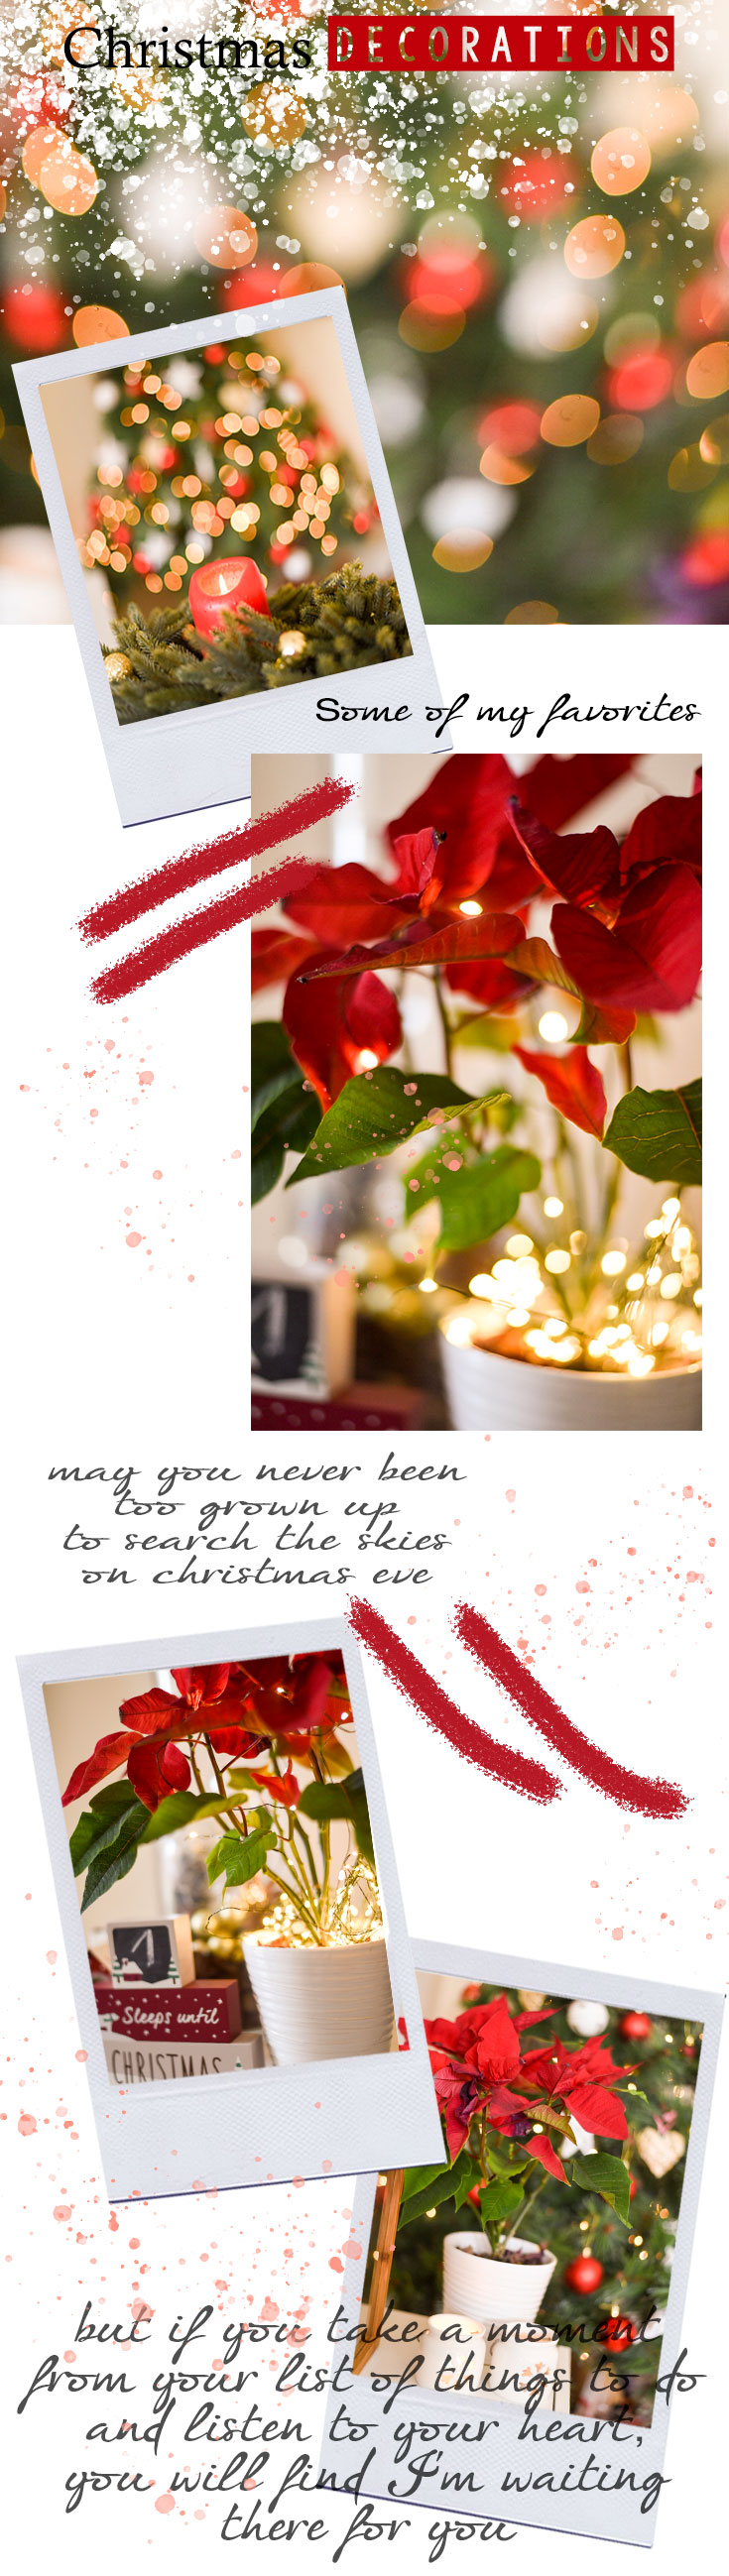 5-THINGS-TO-DO-BEFORE-TO-PACK-UP-YOUR-CHRISTMAS-DECORATIONS